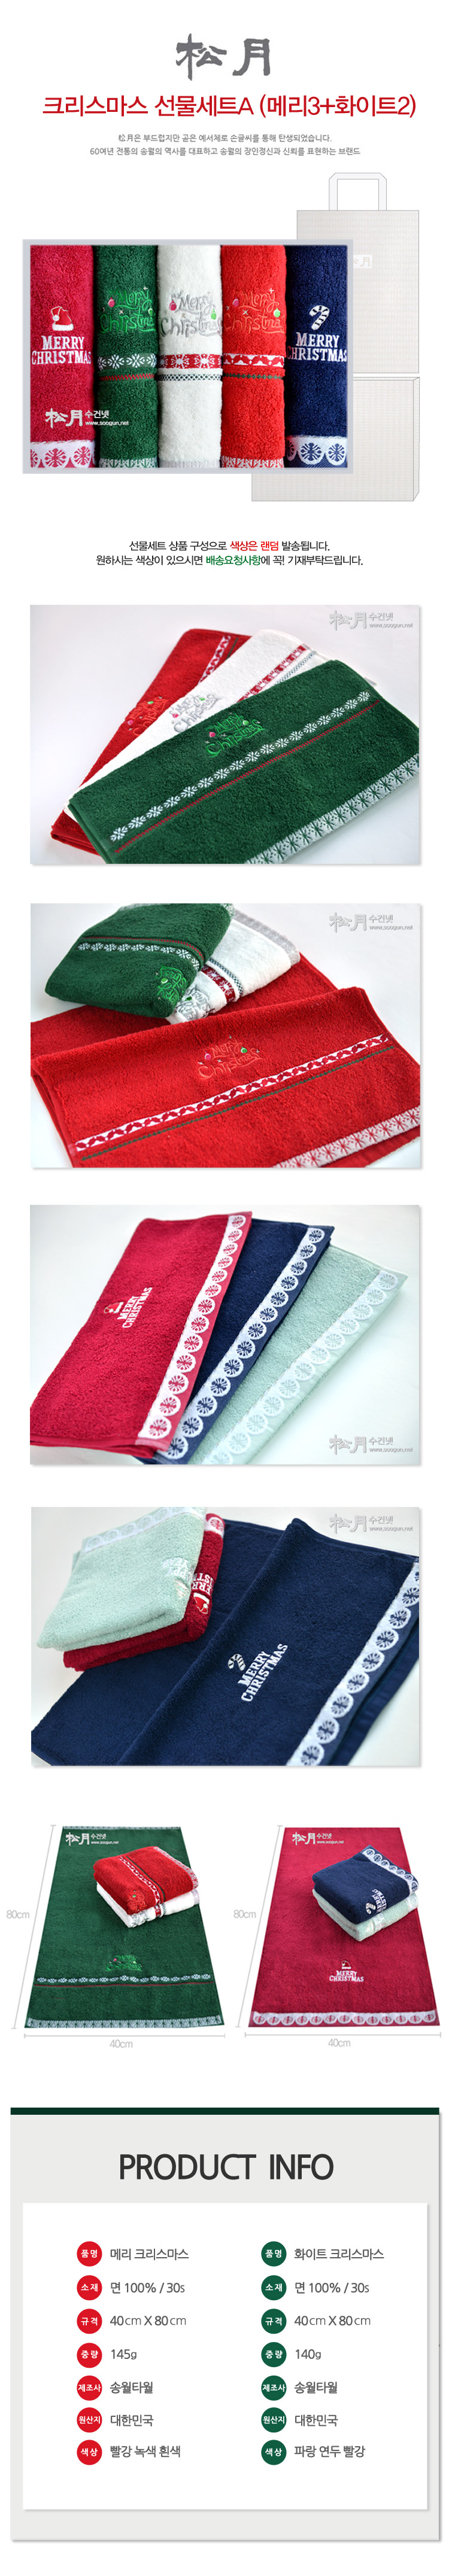 [ songwol ] Serviette Songwol Noël ensemble cadeau 5P C (Merry 3 pcs +2014-2pcs)